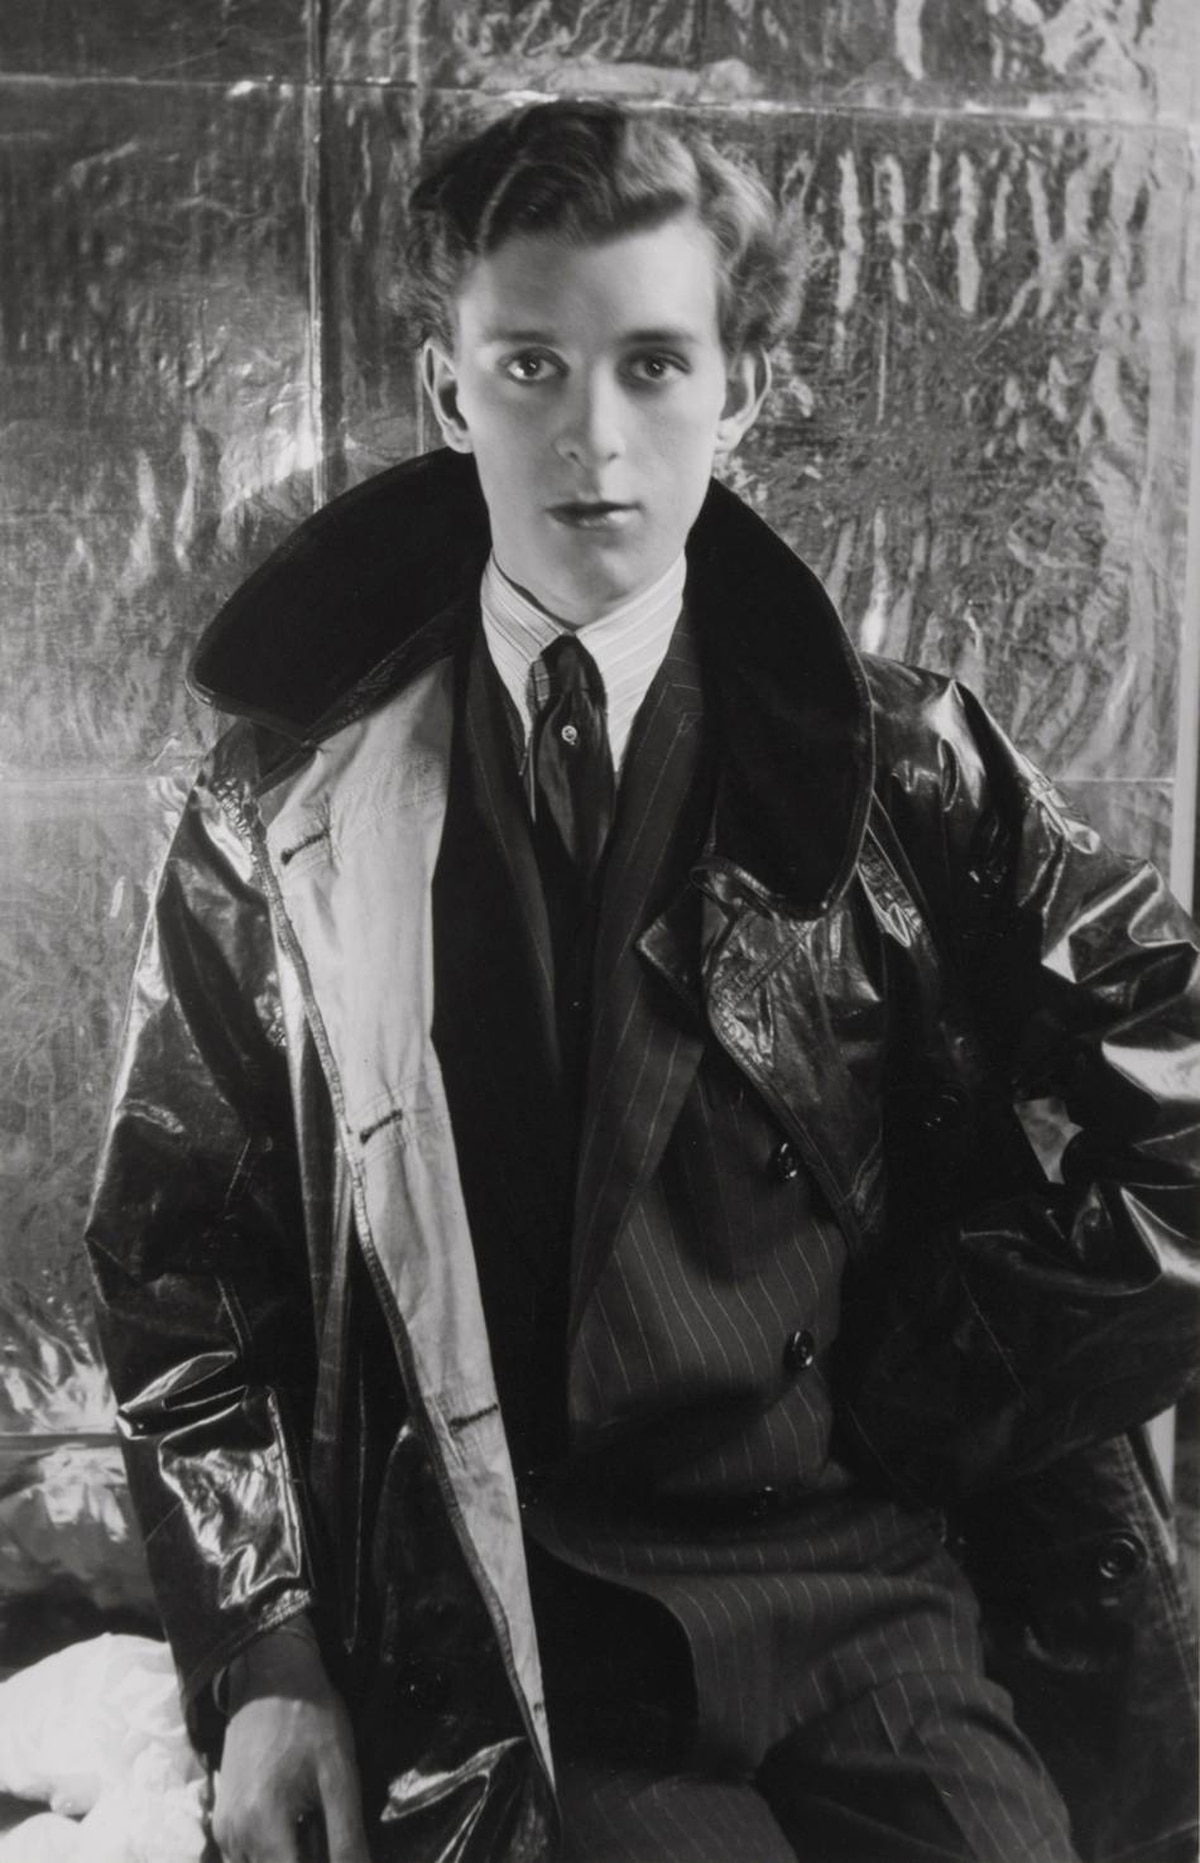 1927 portrait by Cecil Beaton, Works of Art Fund, RISD Museum